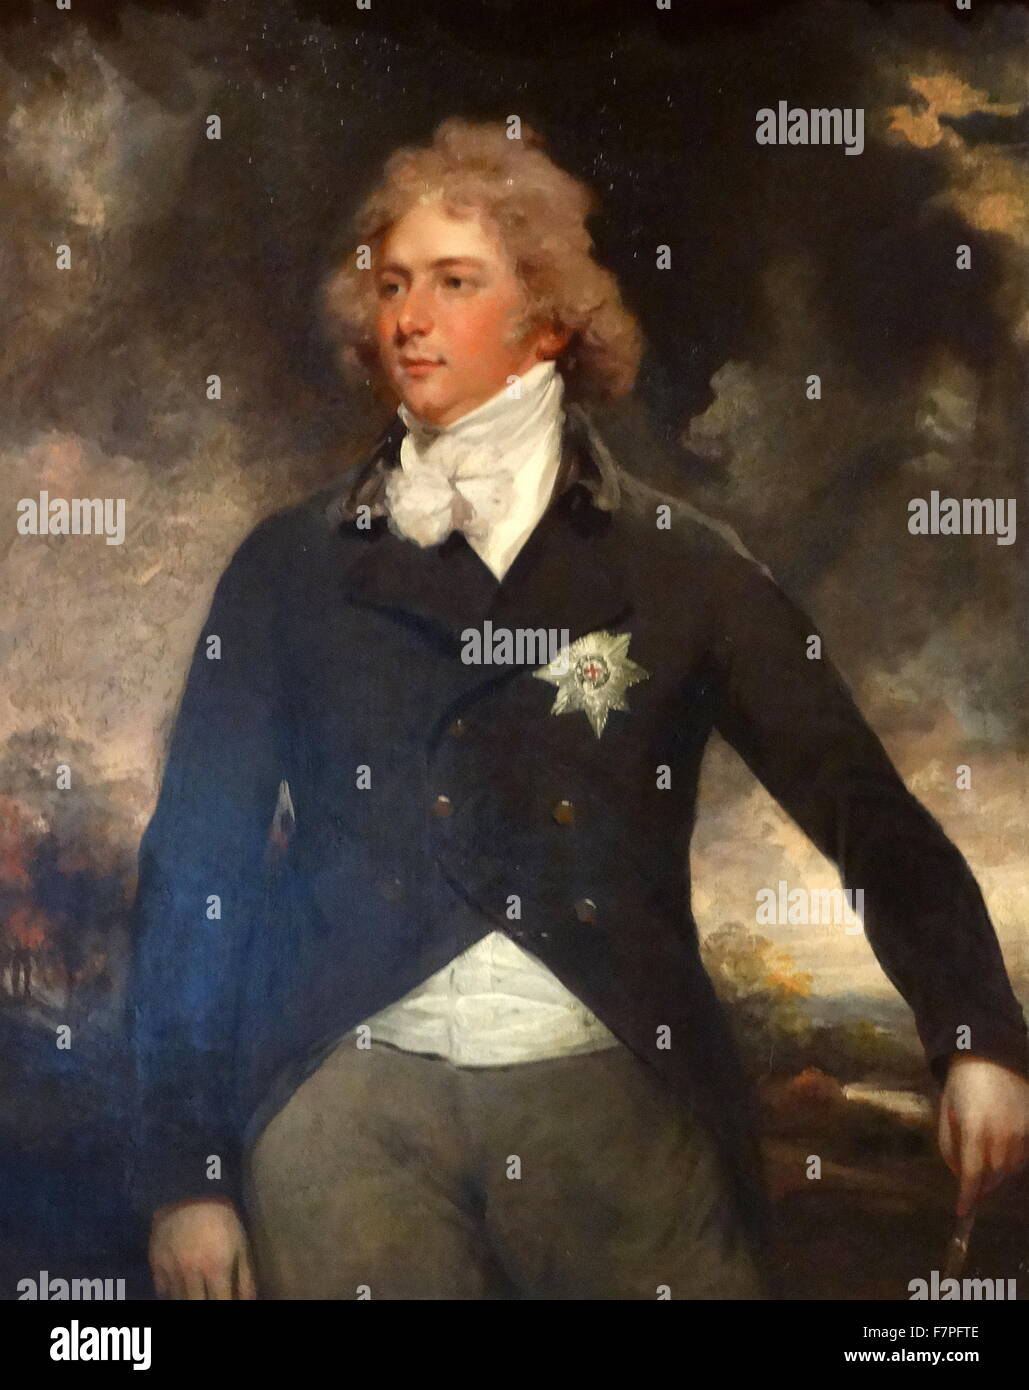 Portrait of George IV as Prince of Wales by John Hoppner (1758-1800) English portrait painter. Dated 19th Century - Stock Image